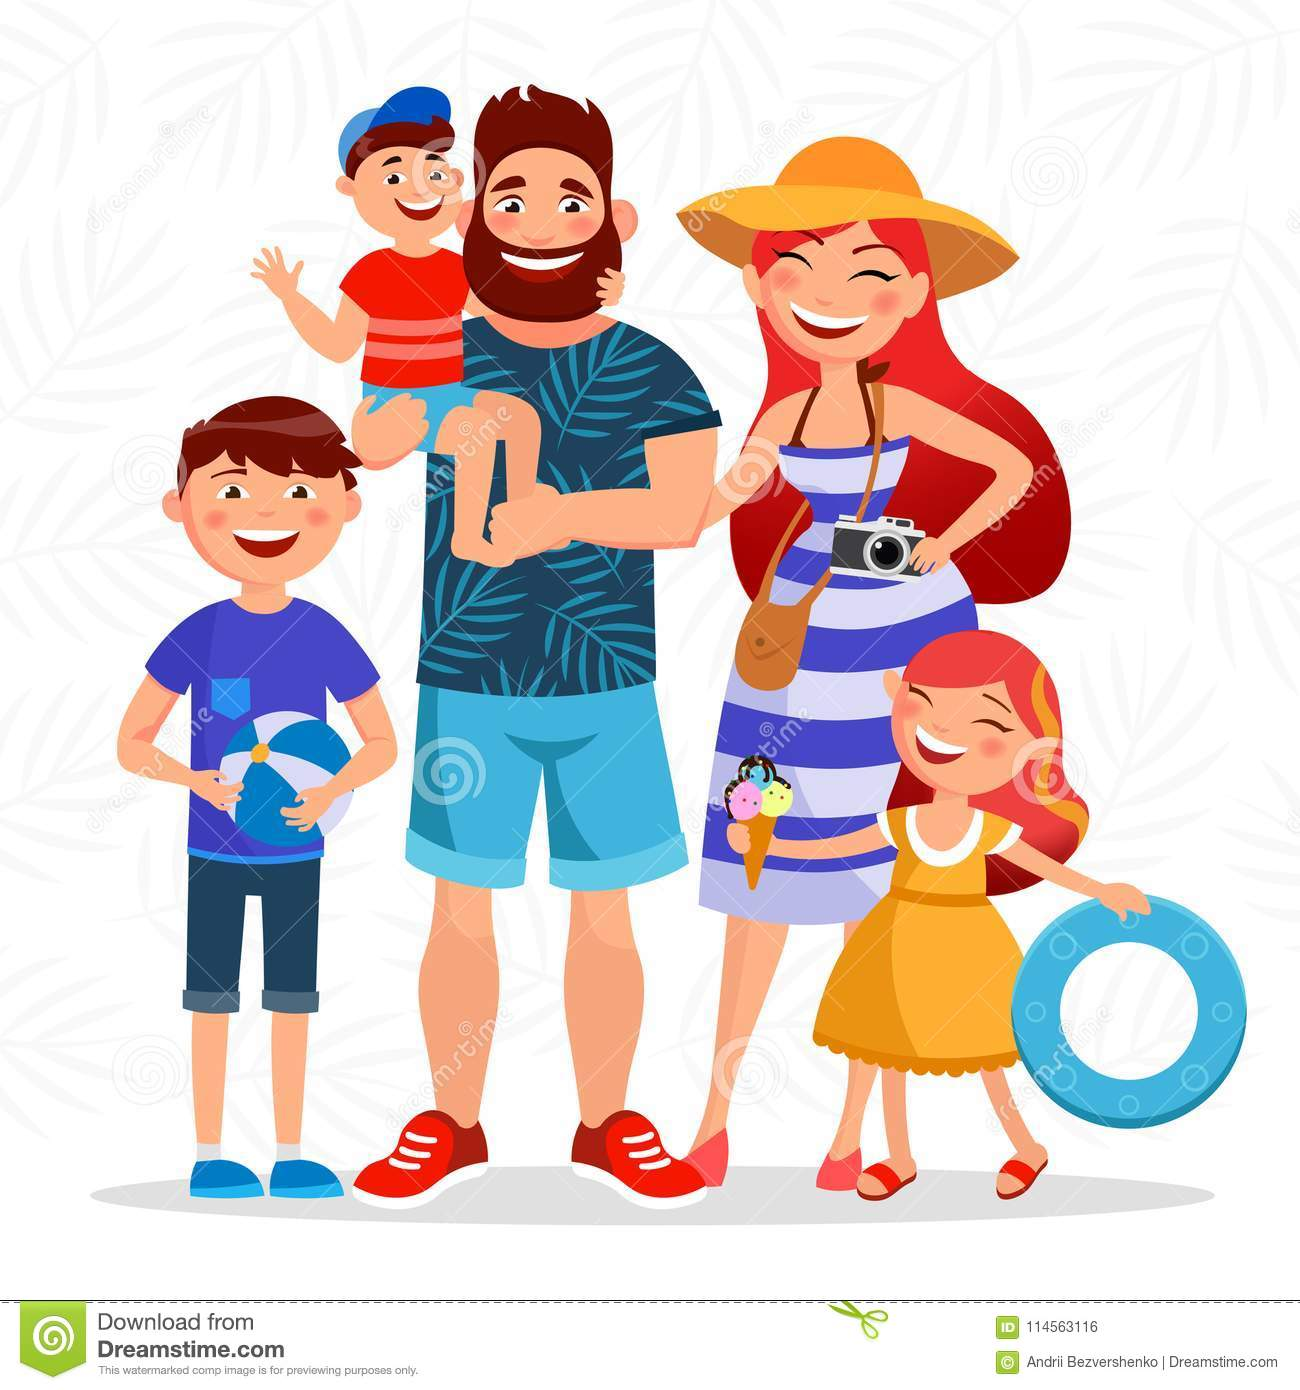 Happy family on summer vacation going to the beach and having rest close to the sea. Parents and children cartoon